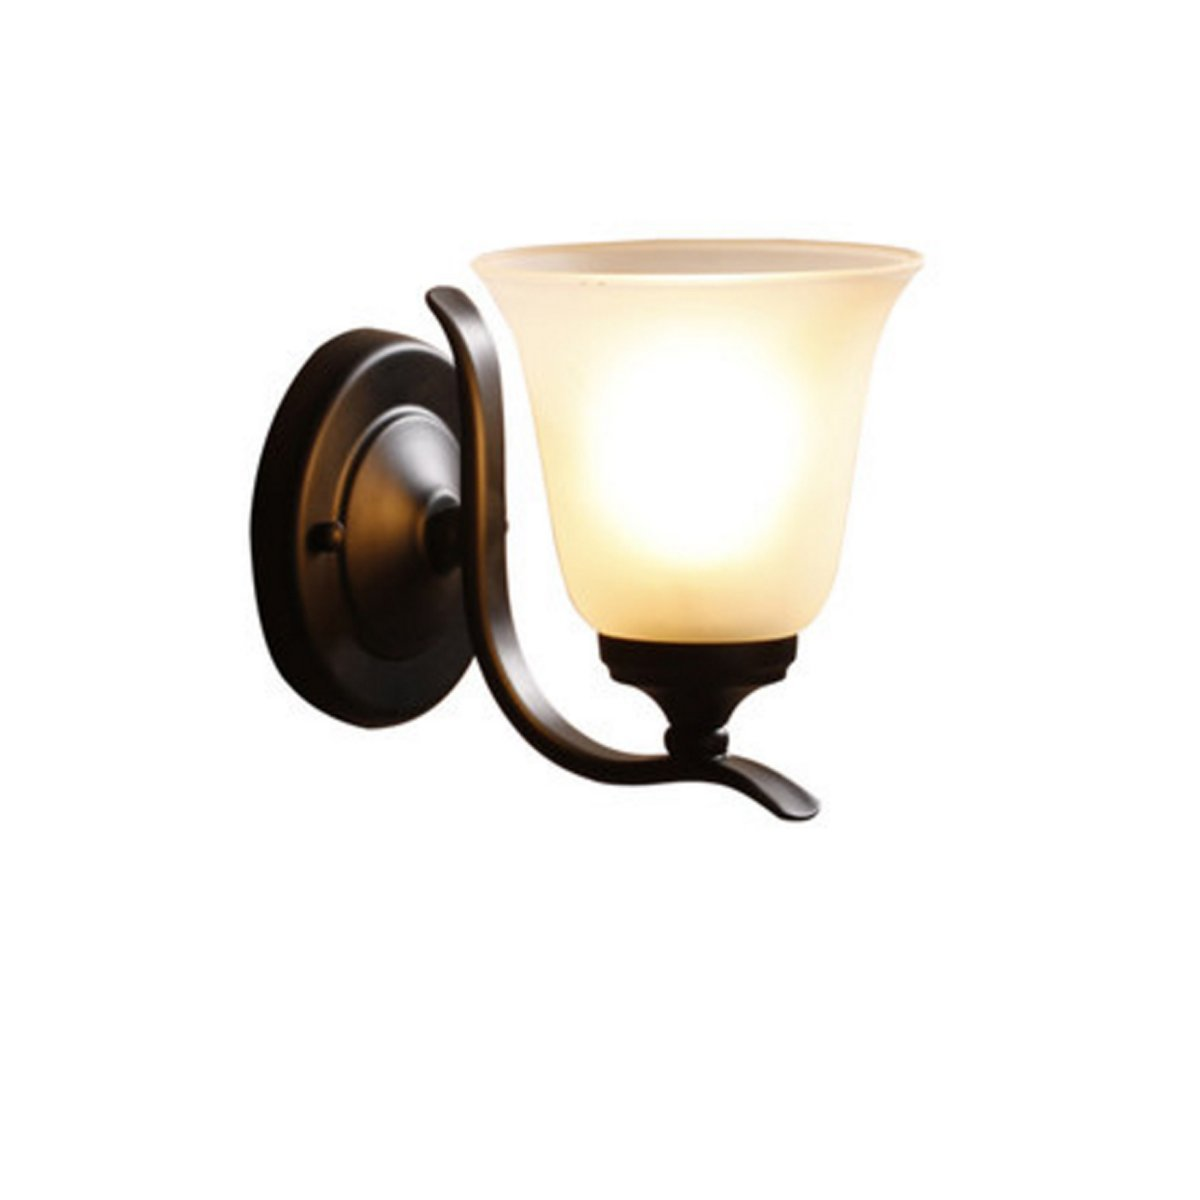 Cheap Hardwired Wall Sconce With Switch, find Hardwired ... on Discount Wall Sconces id=33406